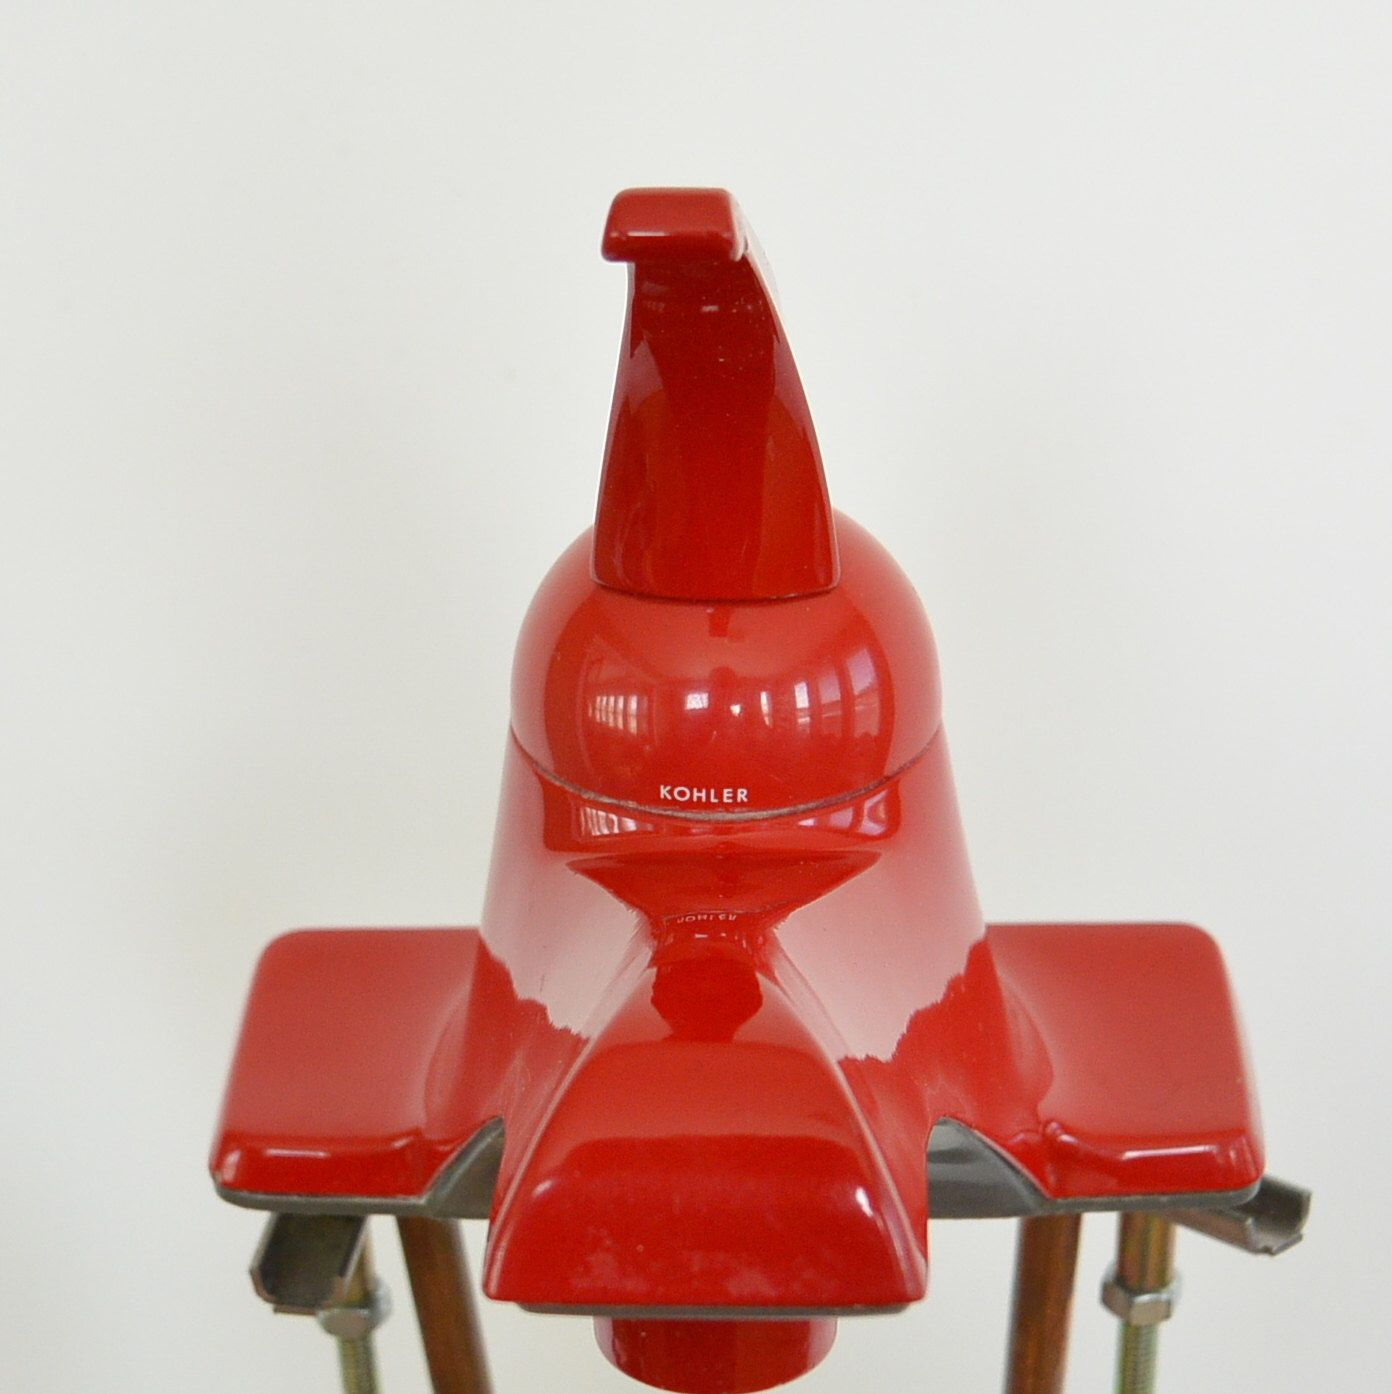 Vintage One Piece Red Bathroom Sink Faucet Candy Apple Red Kohler